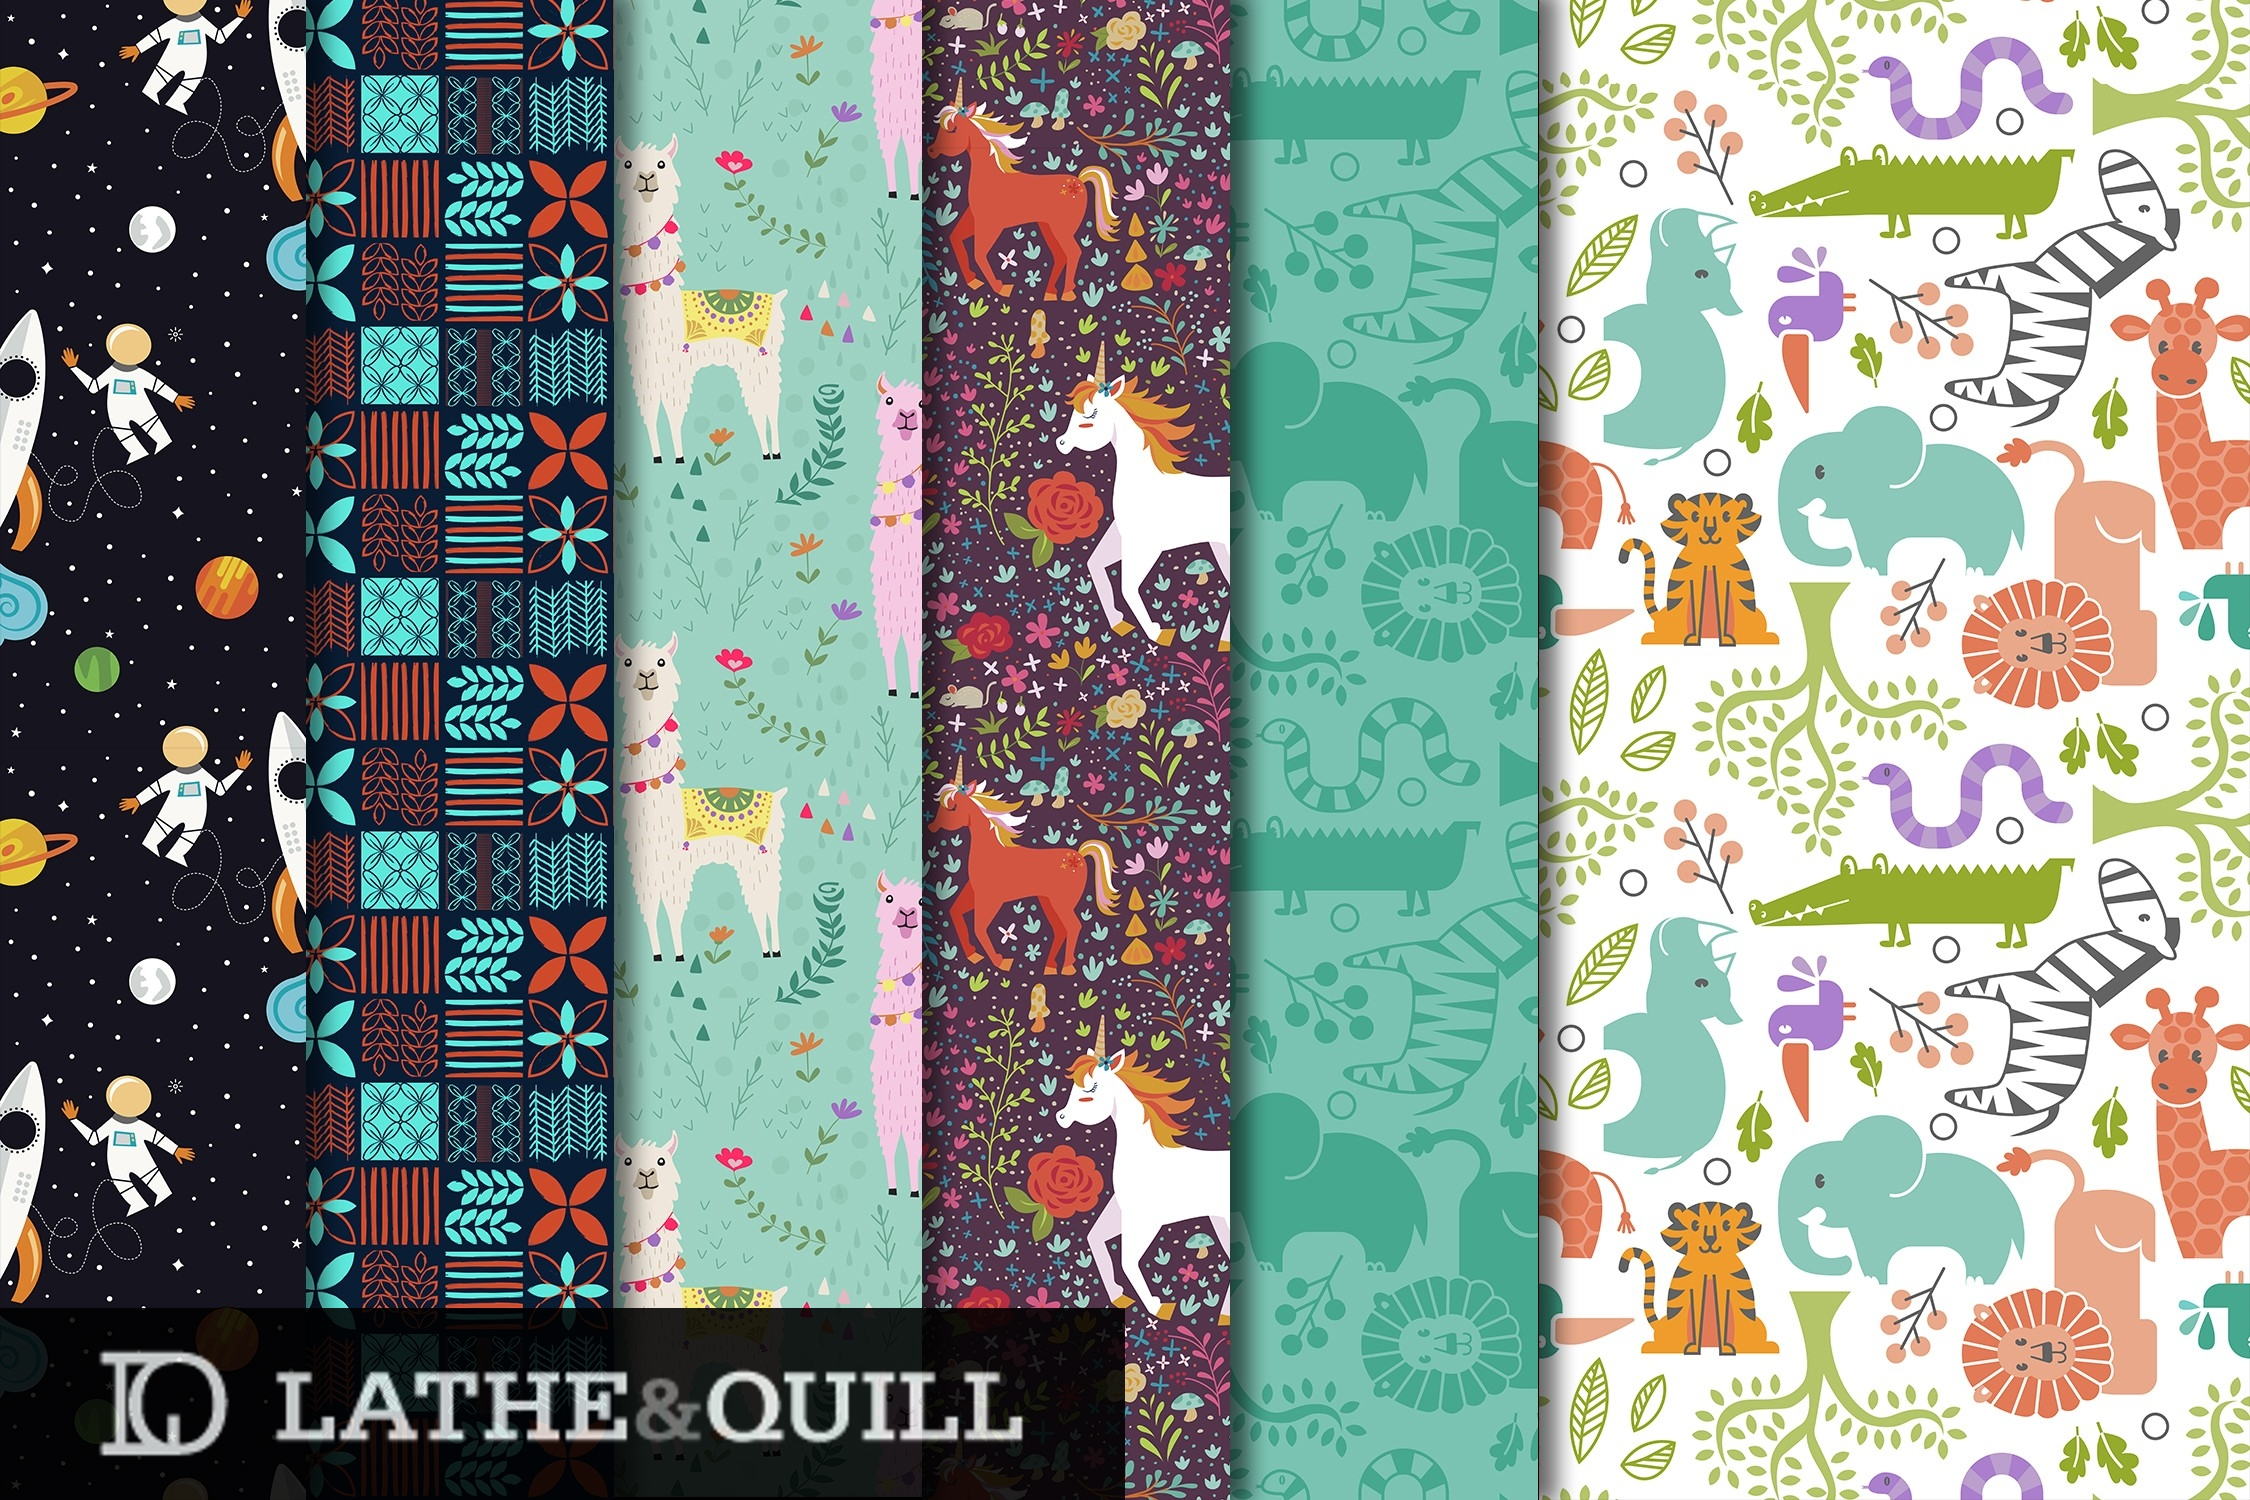 fun patterns for children's room outerspace, llamas, unicorns, and zoo animals what could be better